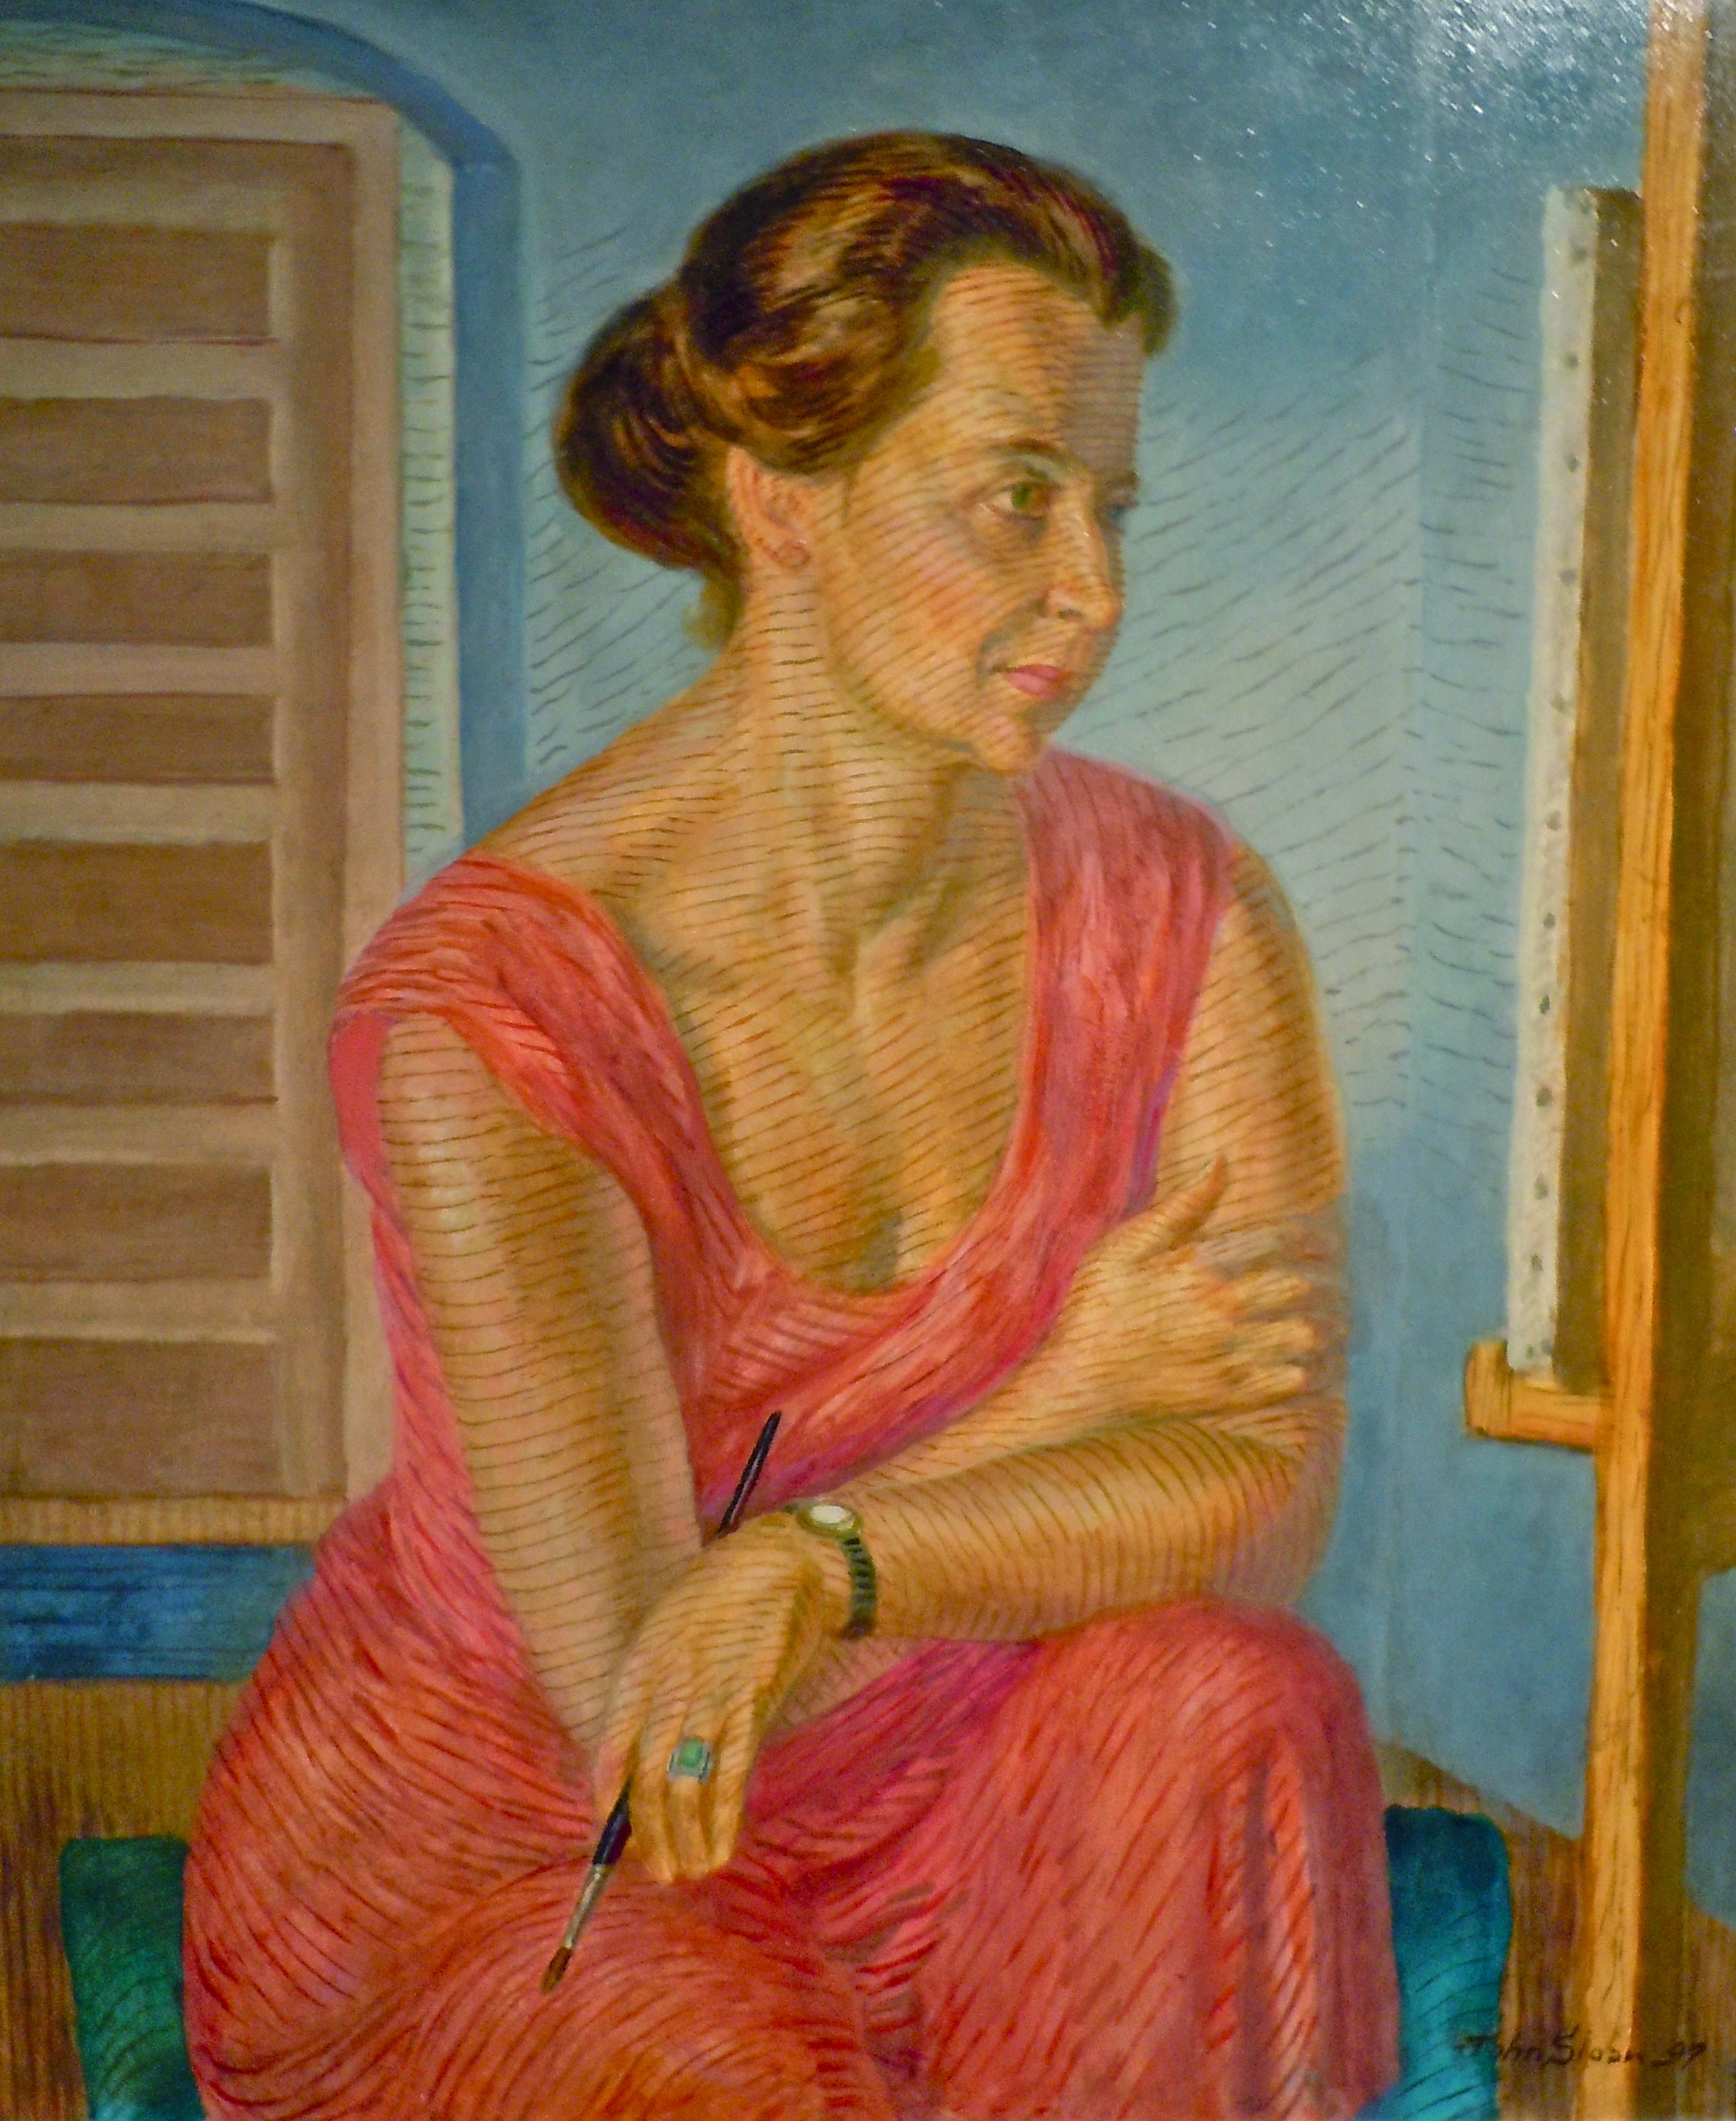 ''Helen at the Easel'', 1947 by John Sloan